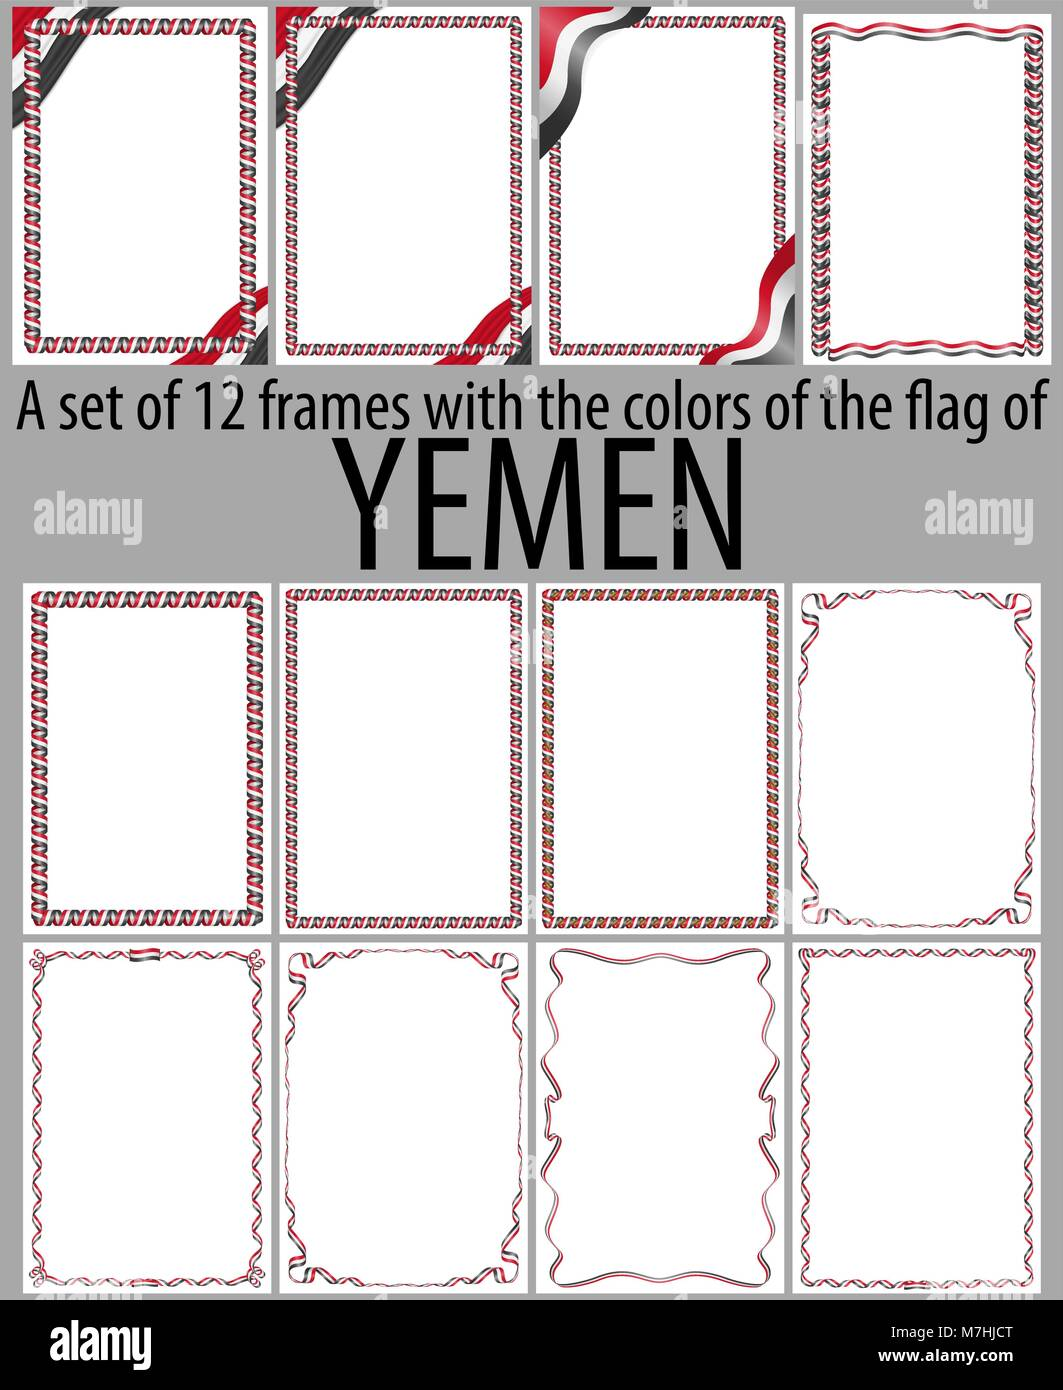 Set of 12 frames with the colors of the flag of Yemen - Stock Vector